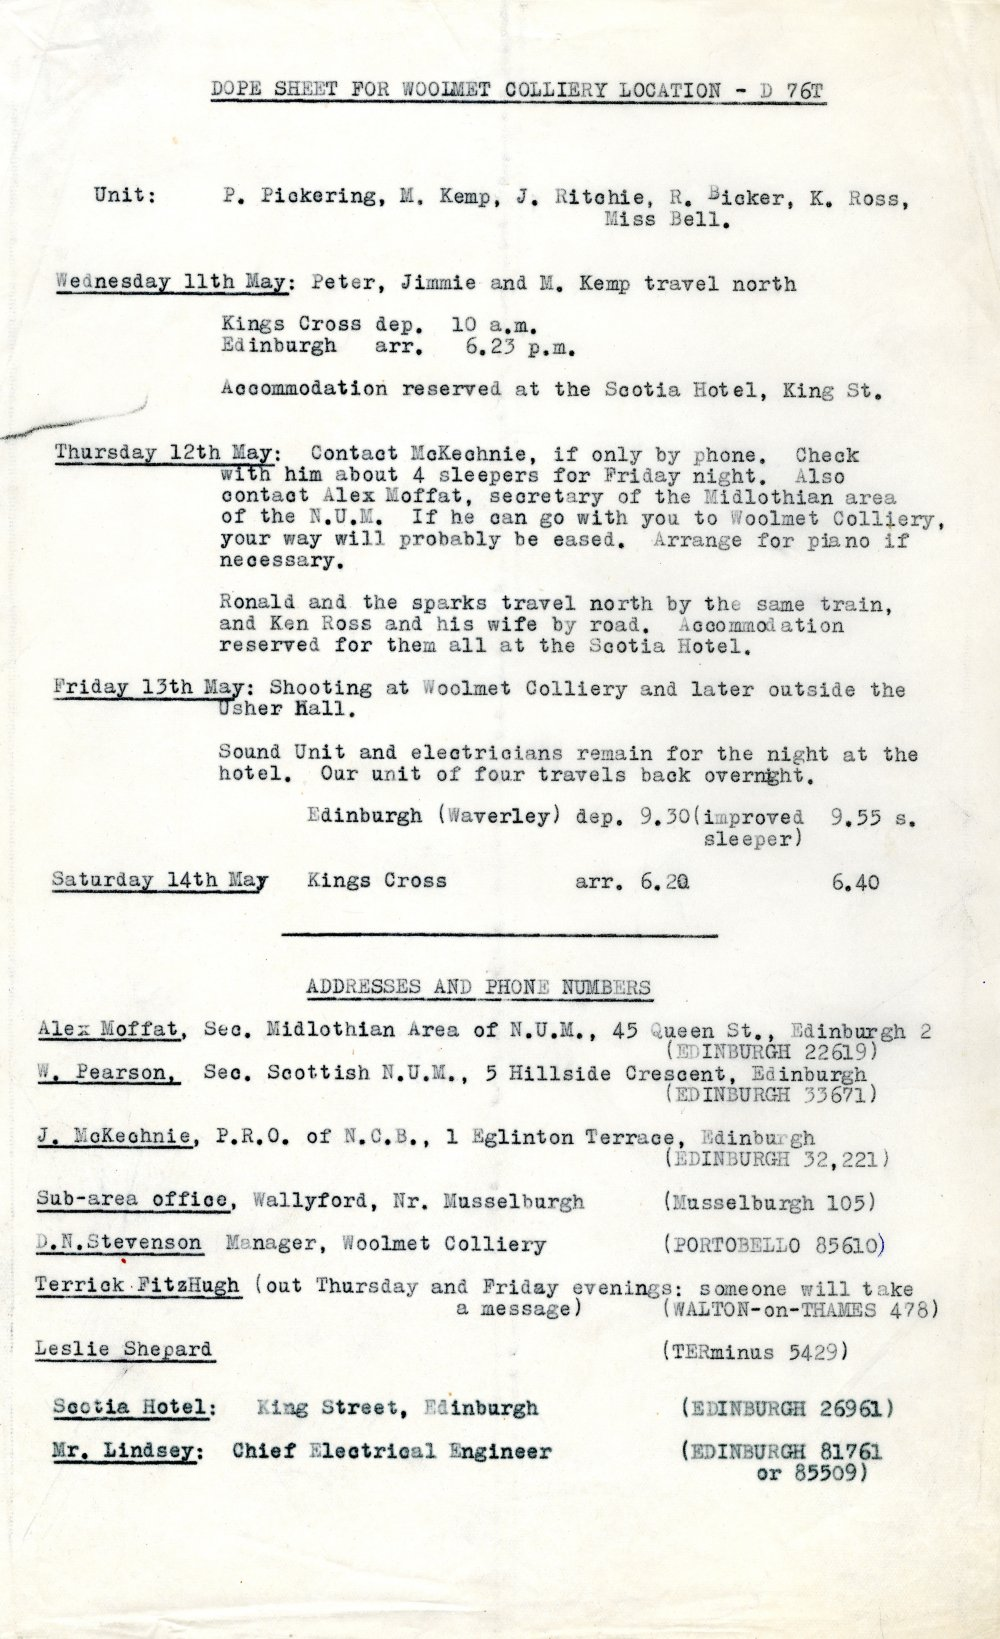 The shooting schedule. James Ritchie, who later became a director and producer at British Transport Films, was the item's director of photography, assisted by Ron Bicker, who was later promoted to director of photography. Kenneth Ross was the freelancer hired in for the sound recording